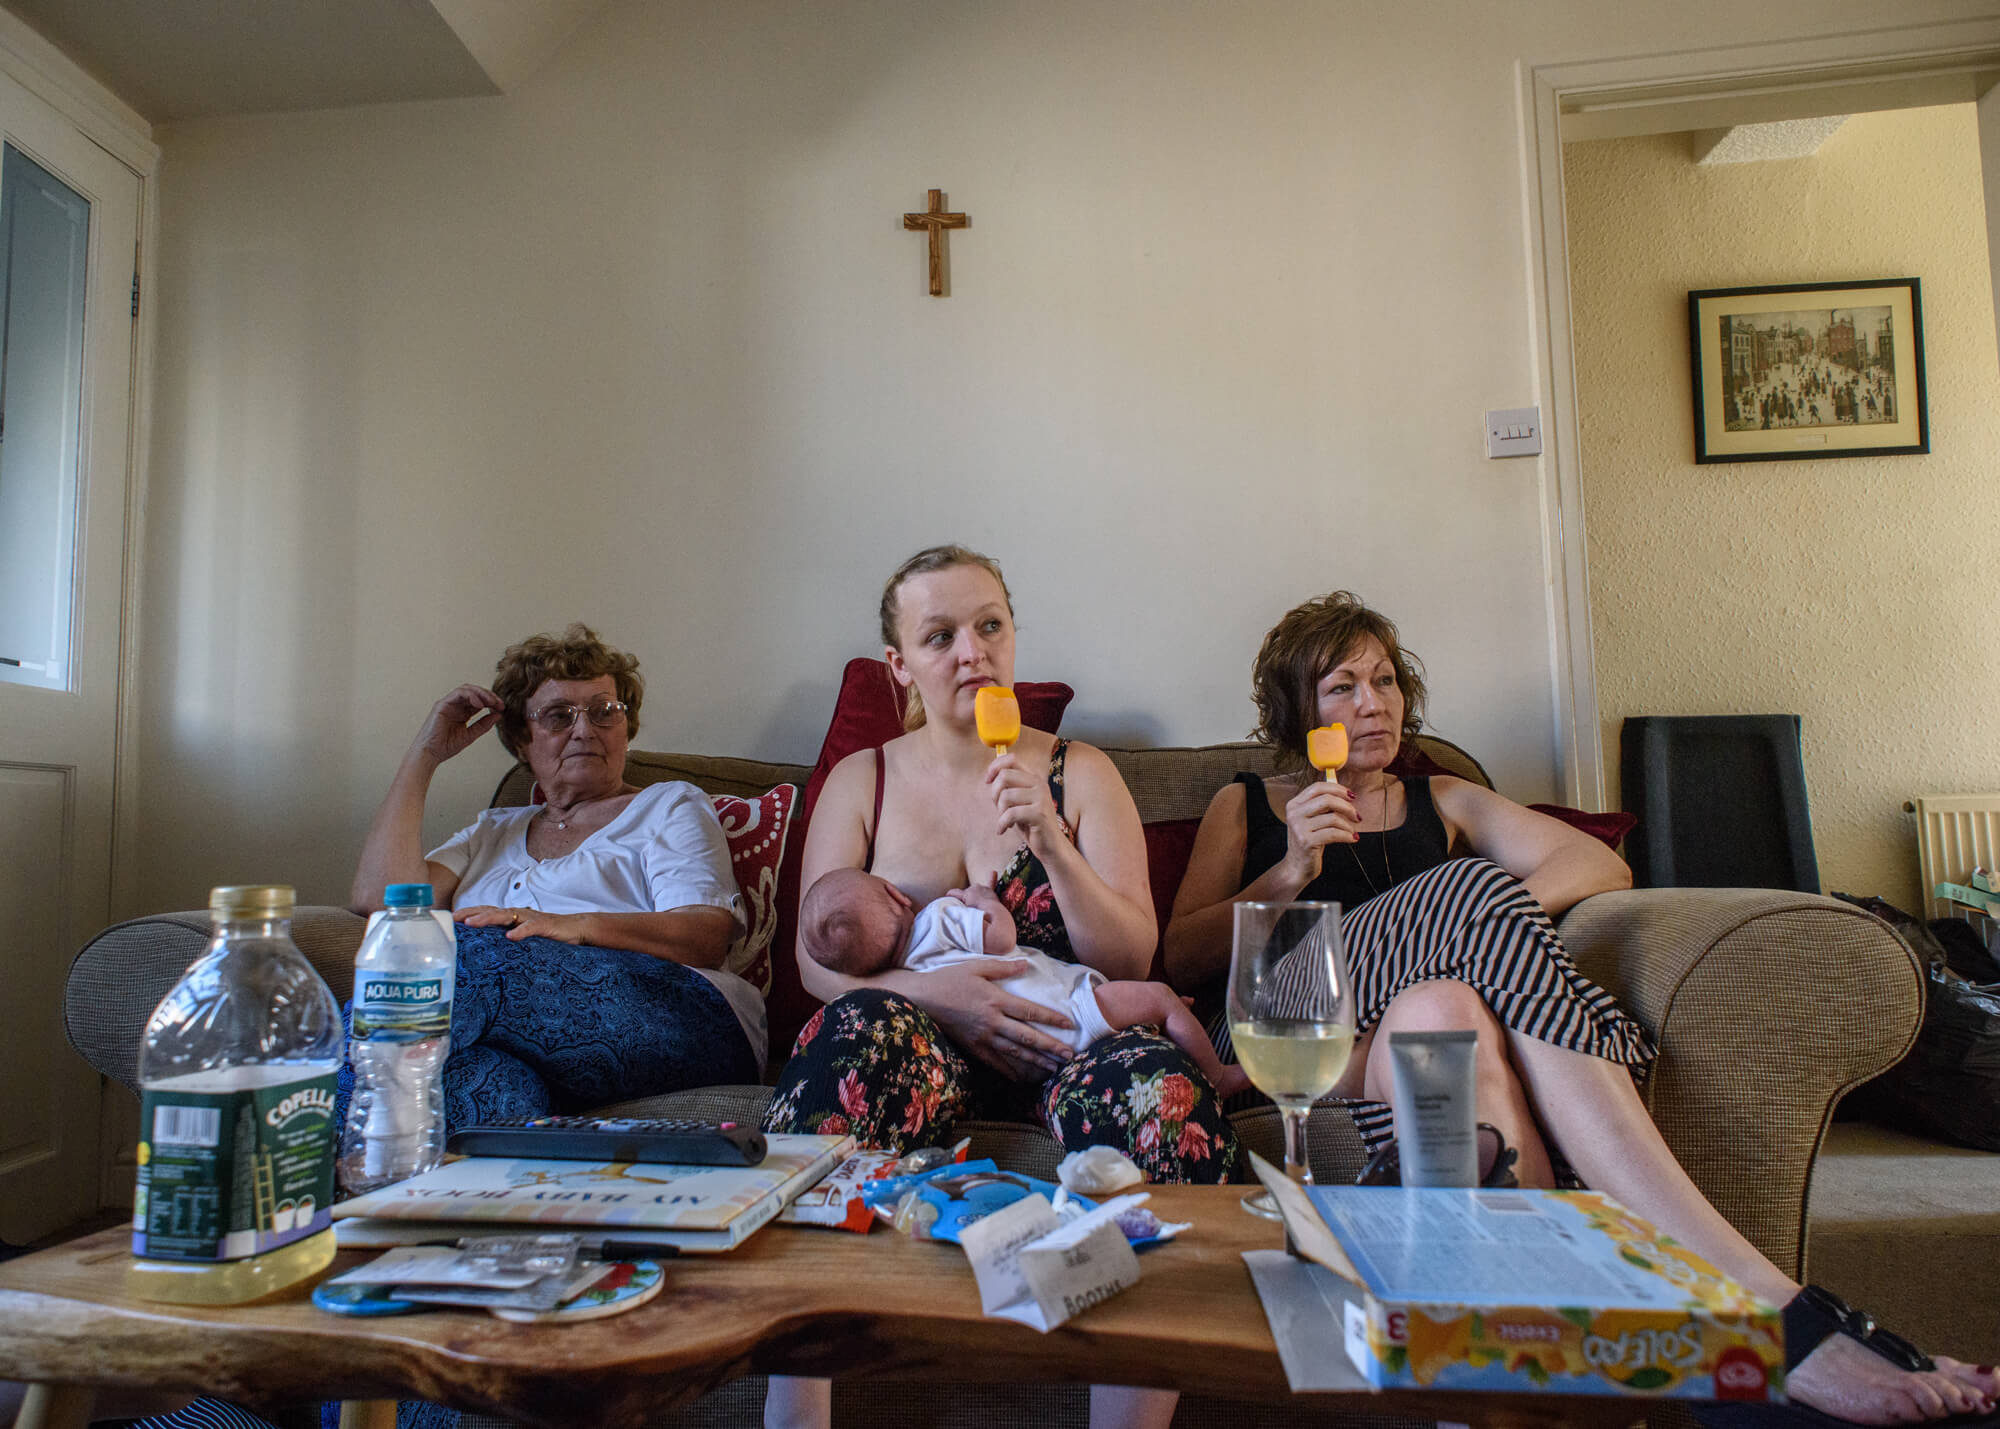 Alice Dempsey photography goodnight god bless three women sat on sofa eating ice creams against a white background the south west collective of photography ltd